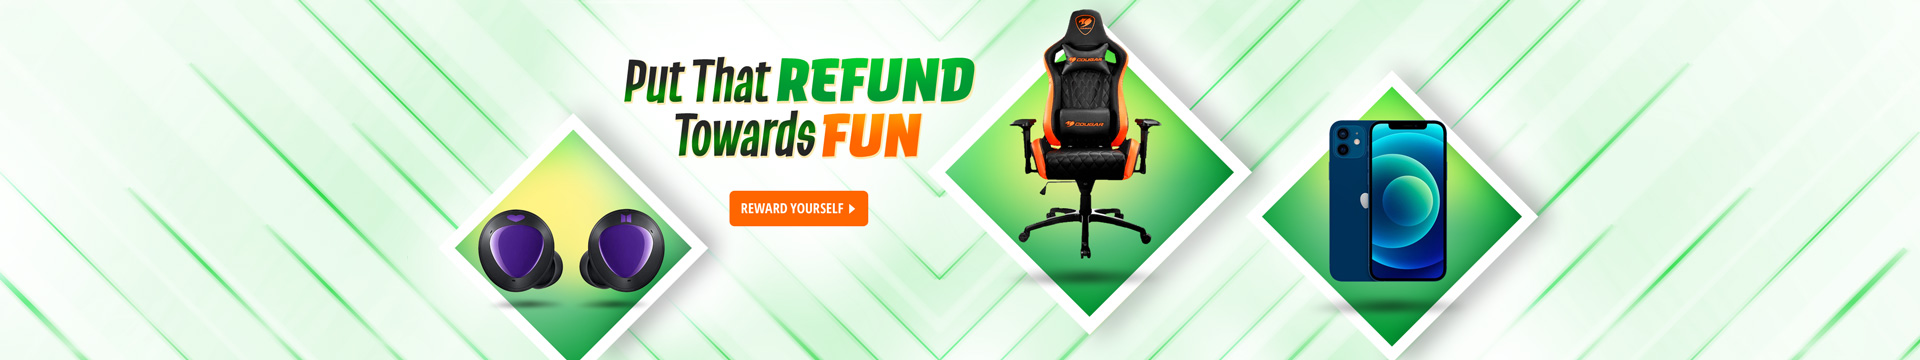 Put That Refund Towards Fun